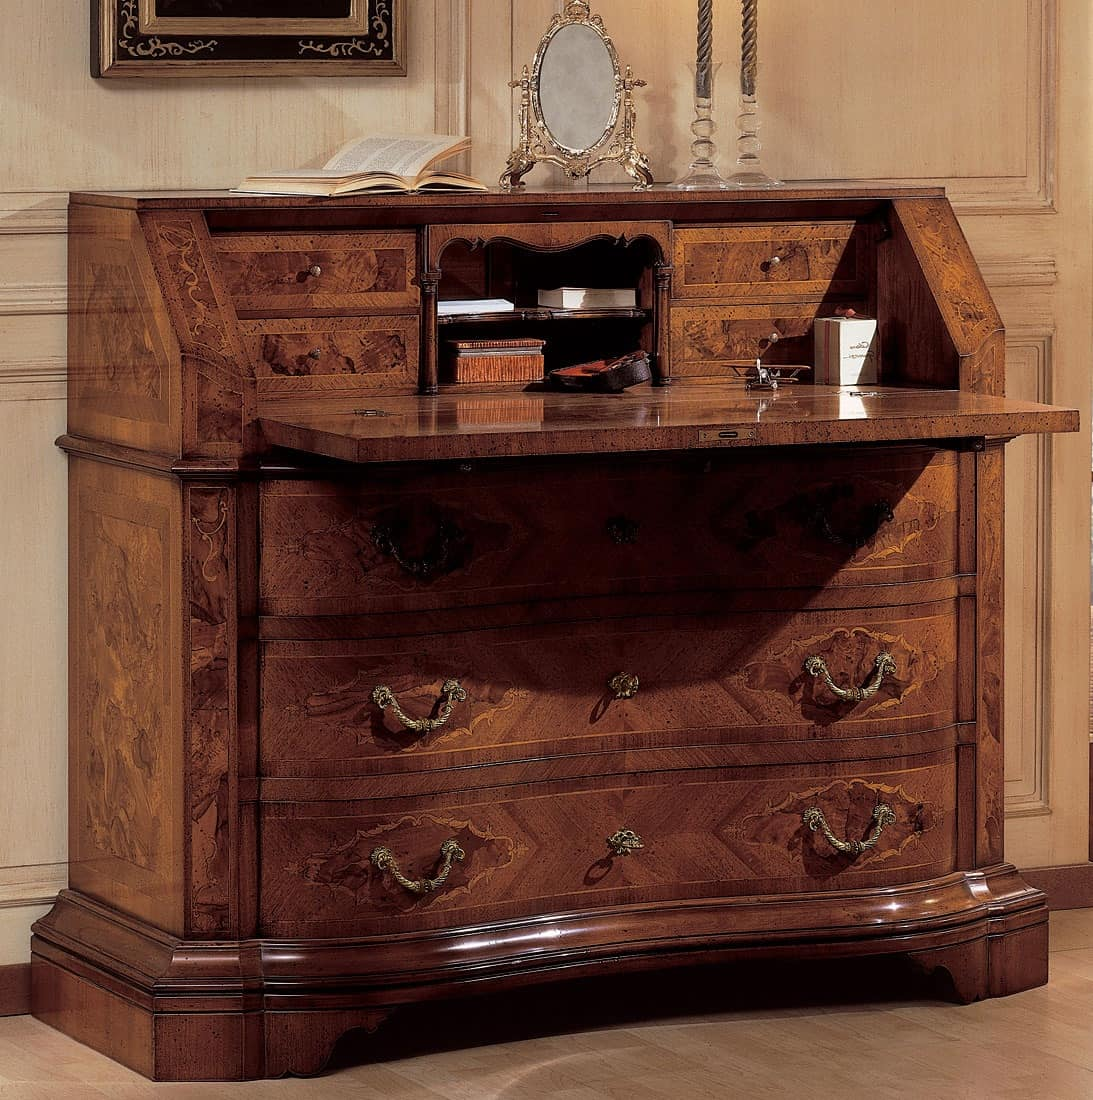 Art. 2080, Wooden cabinet, with antique finish, with folding top